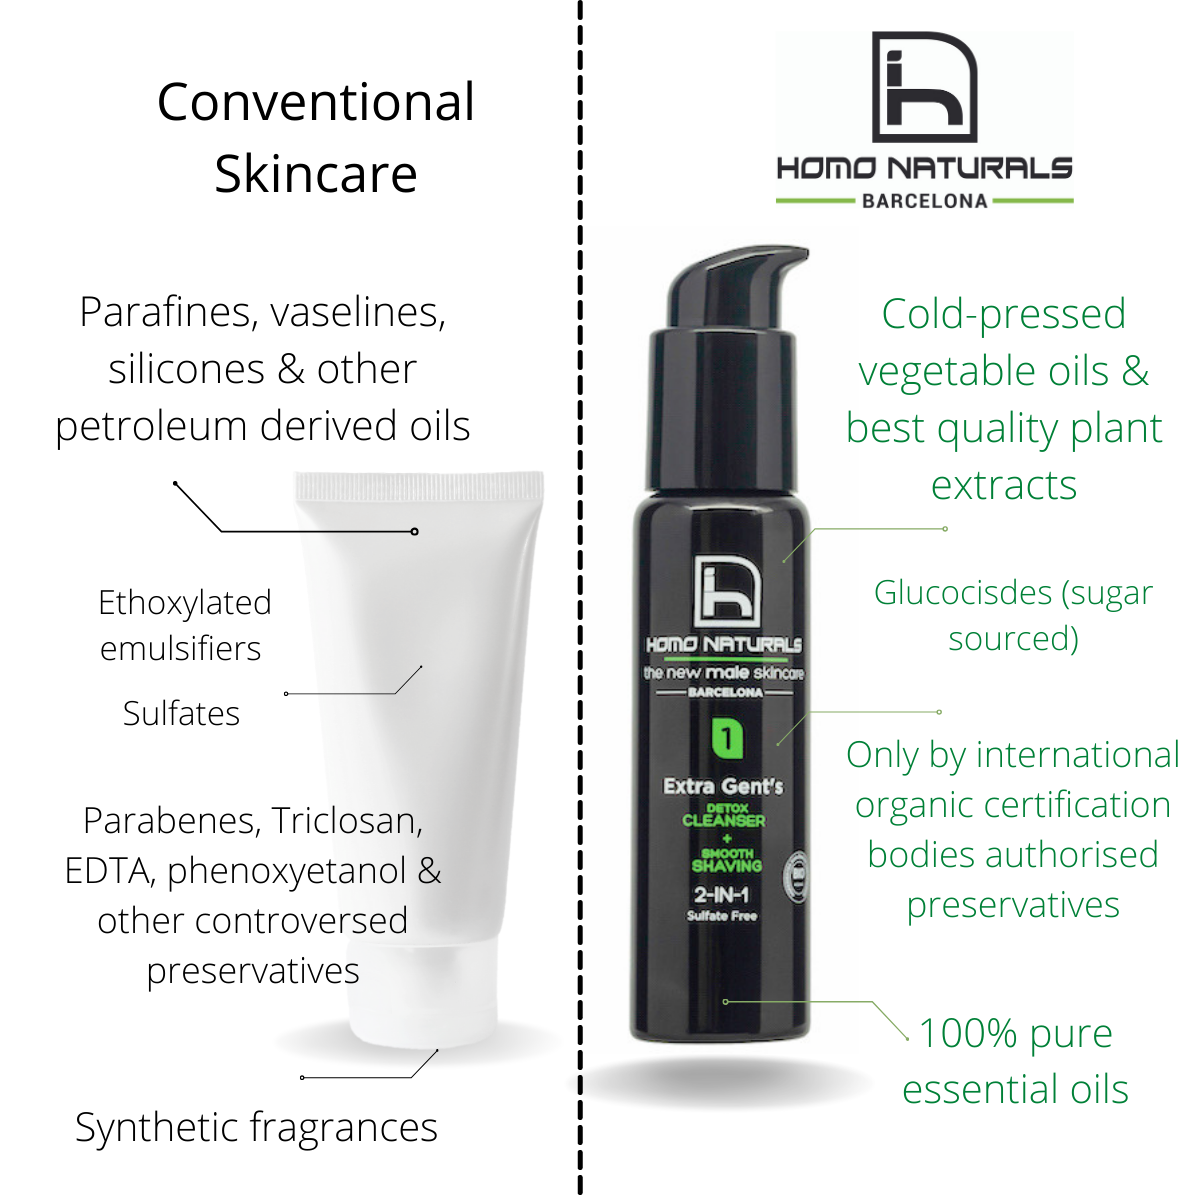 Differences between natural skincare and conventional skincare